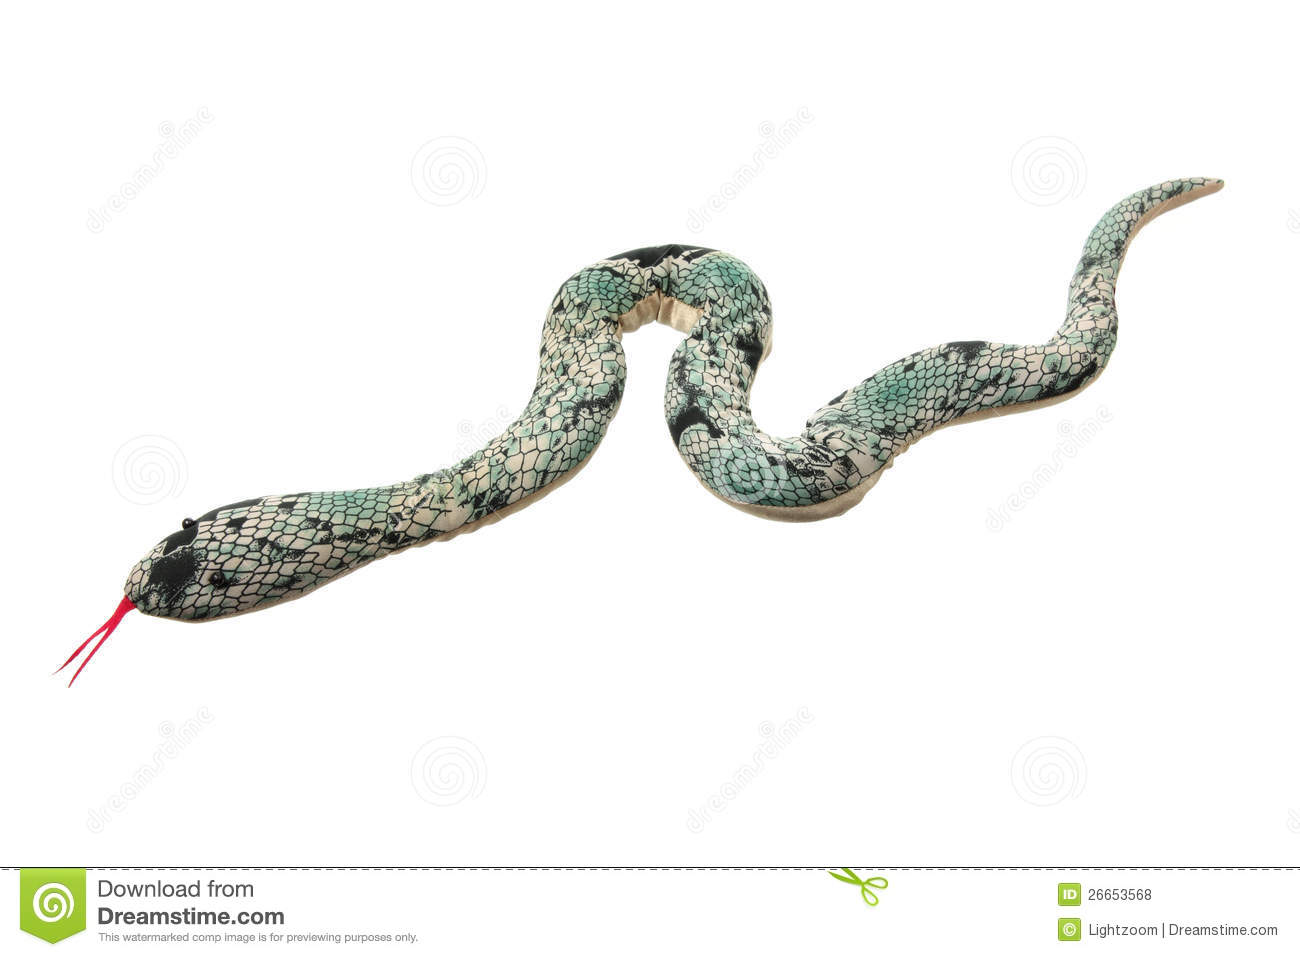 Toy Snake Royalty Free Stock Photos - Image: 26653568